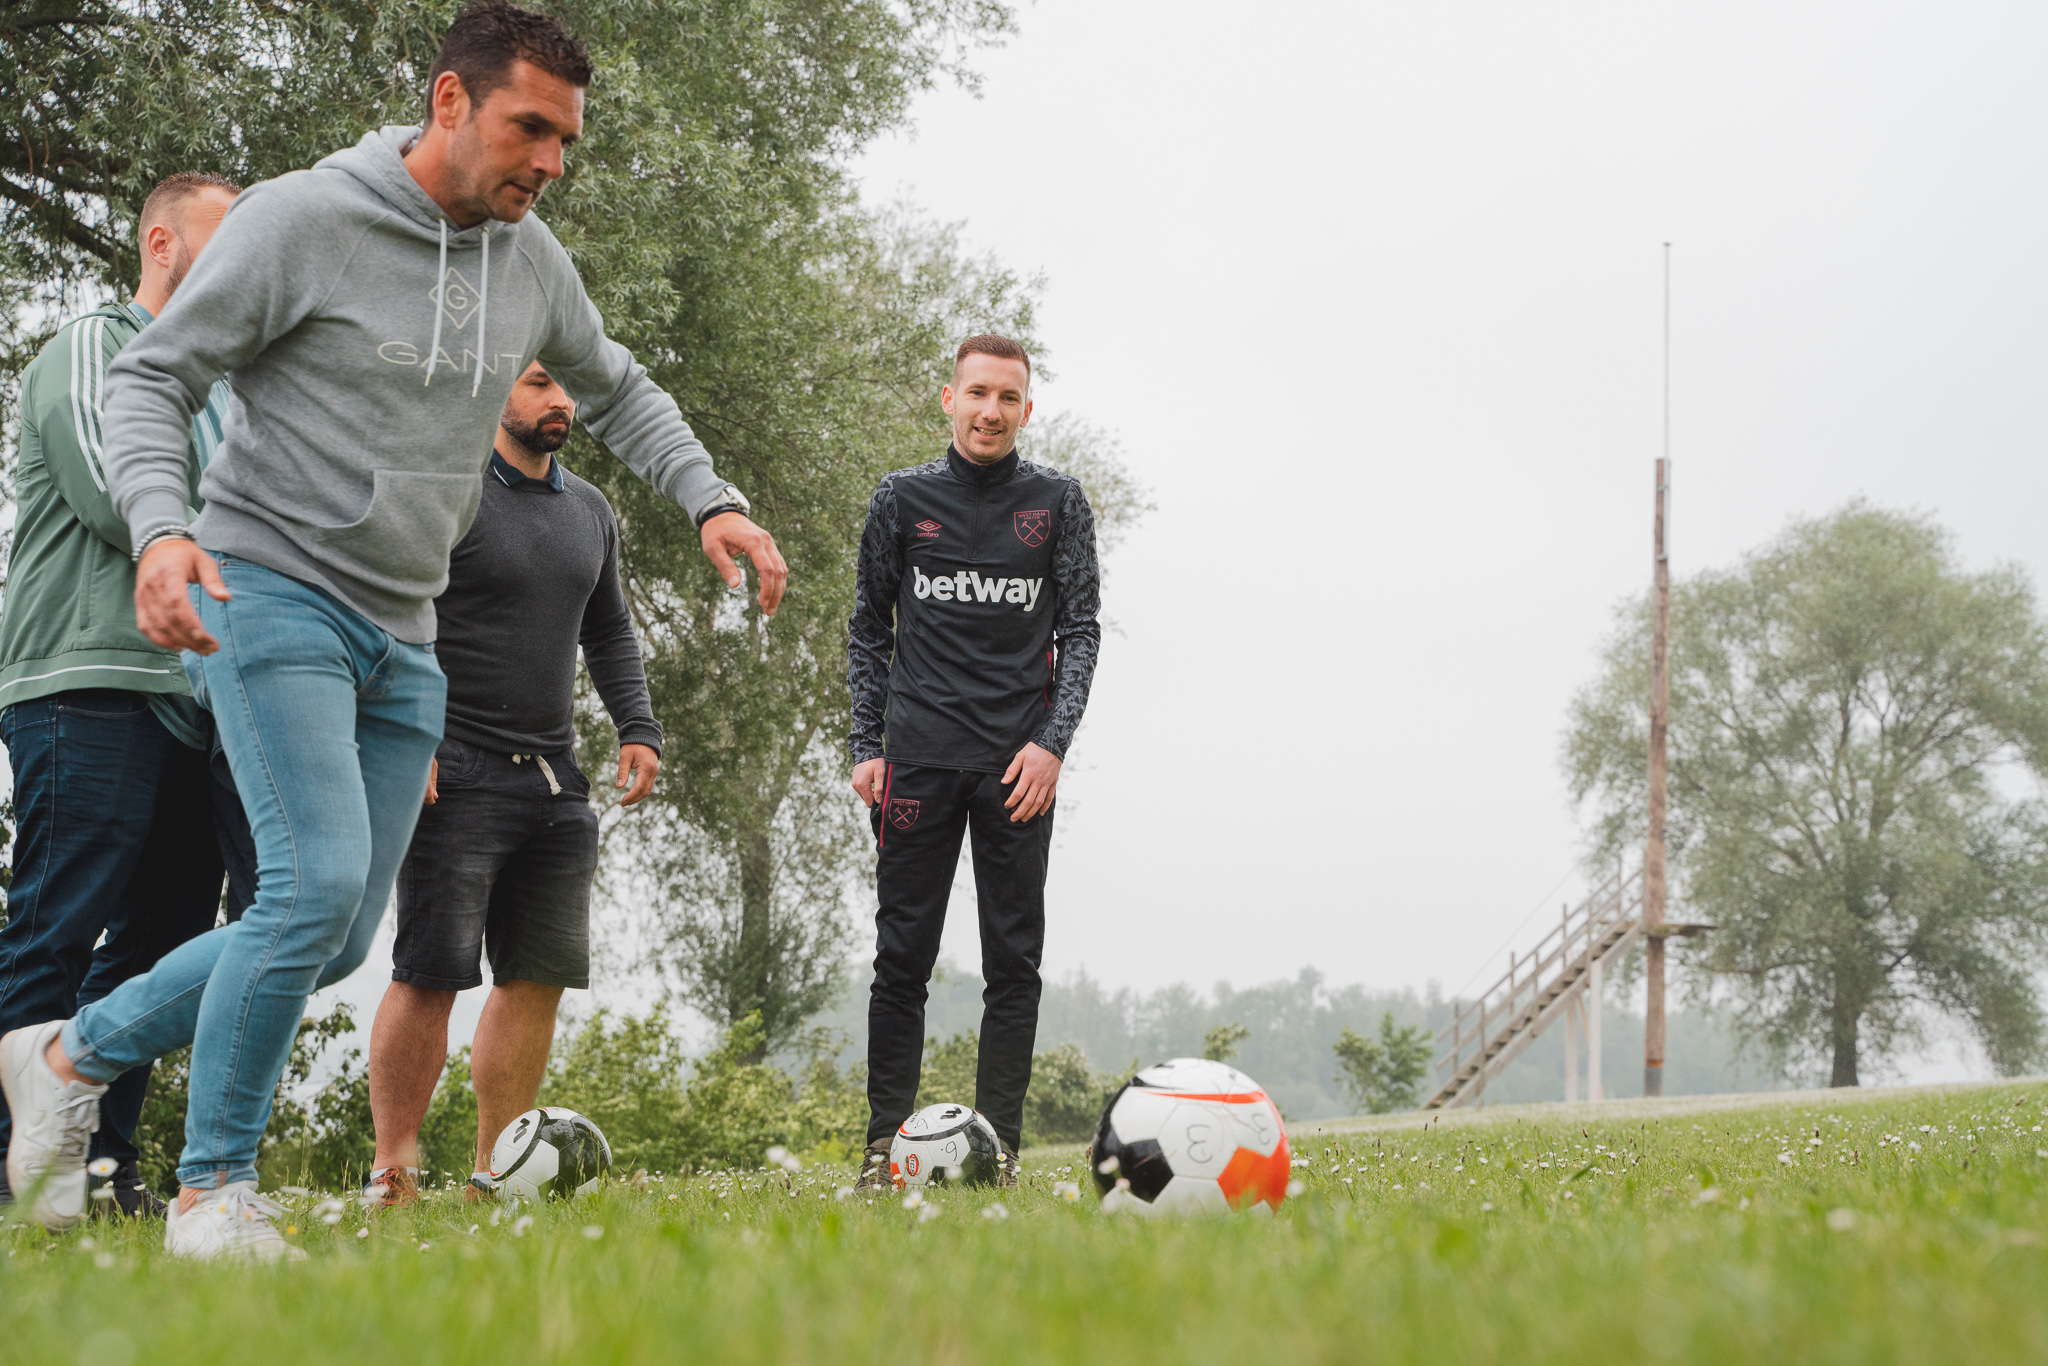 en-footgolf-clinic-356